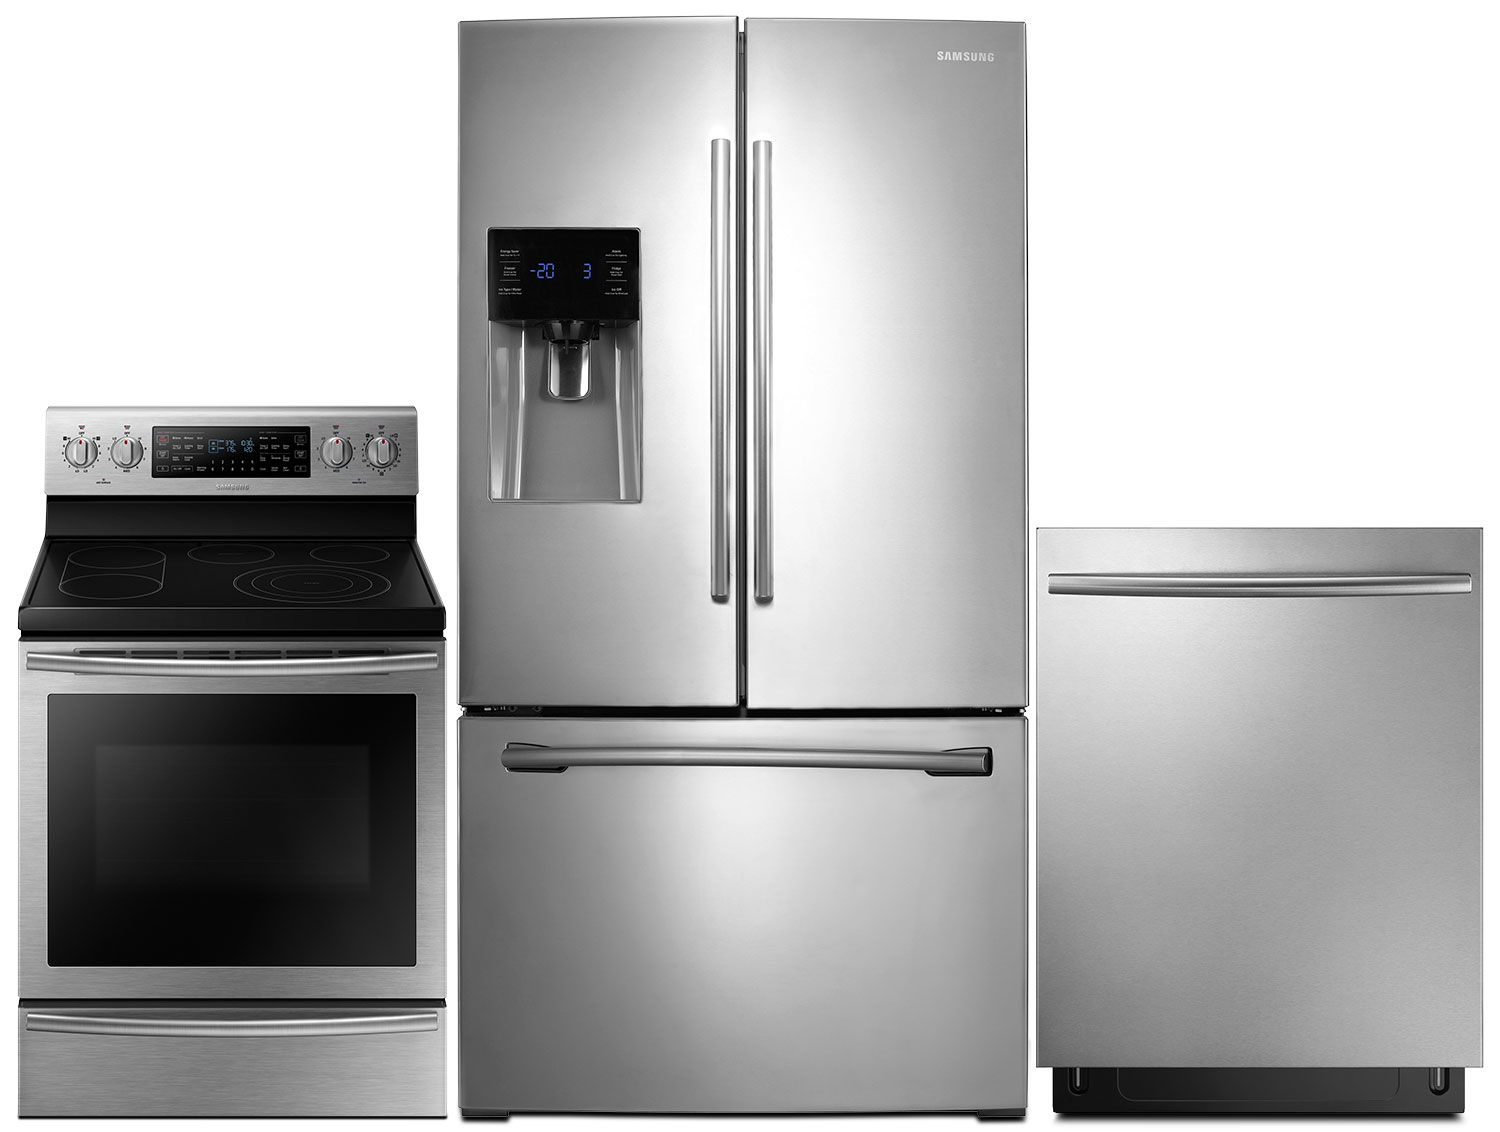 Samsung 26 Cu. Ft. Refrigerator, 5.9 Cu. Ft. Range and Dishwasher – Stainless Steel